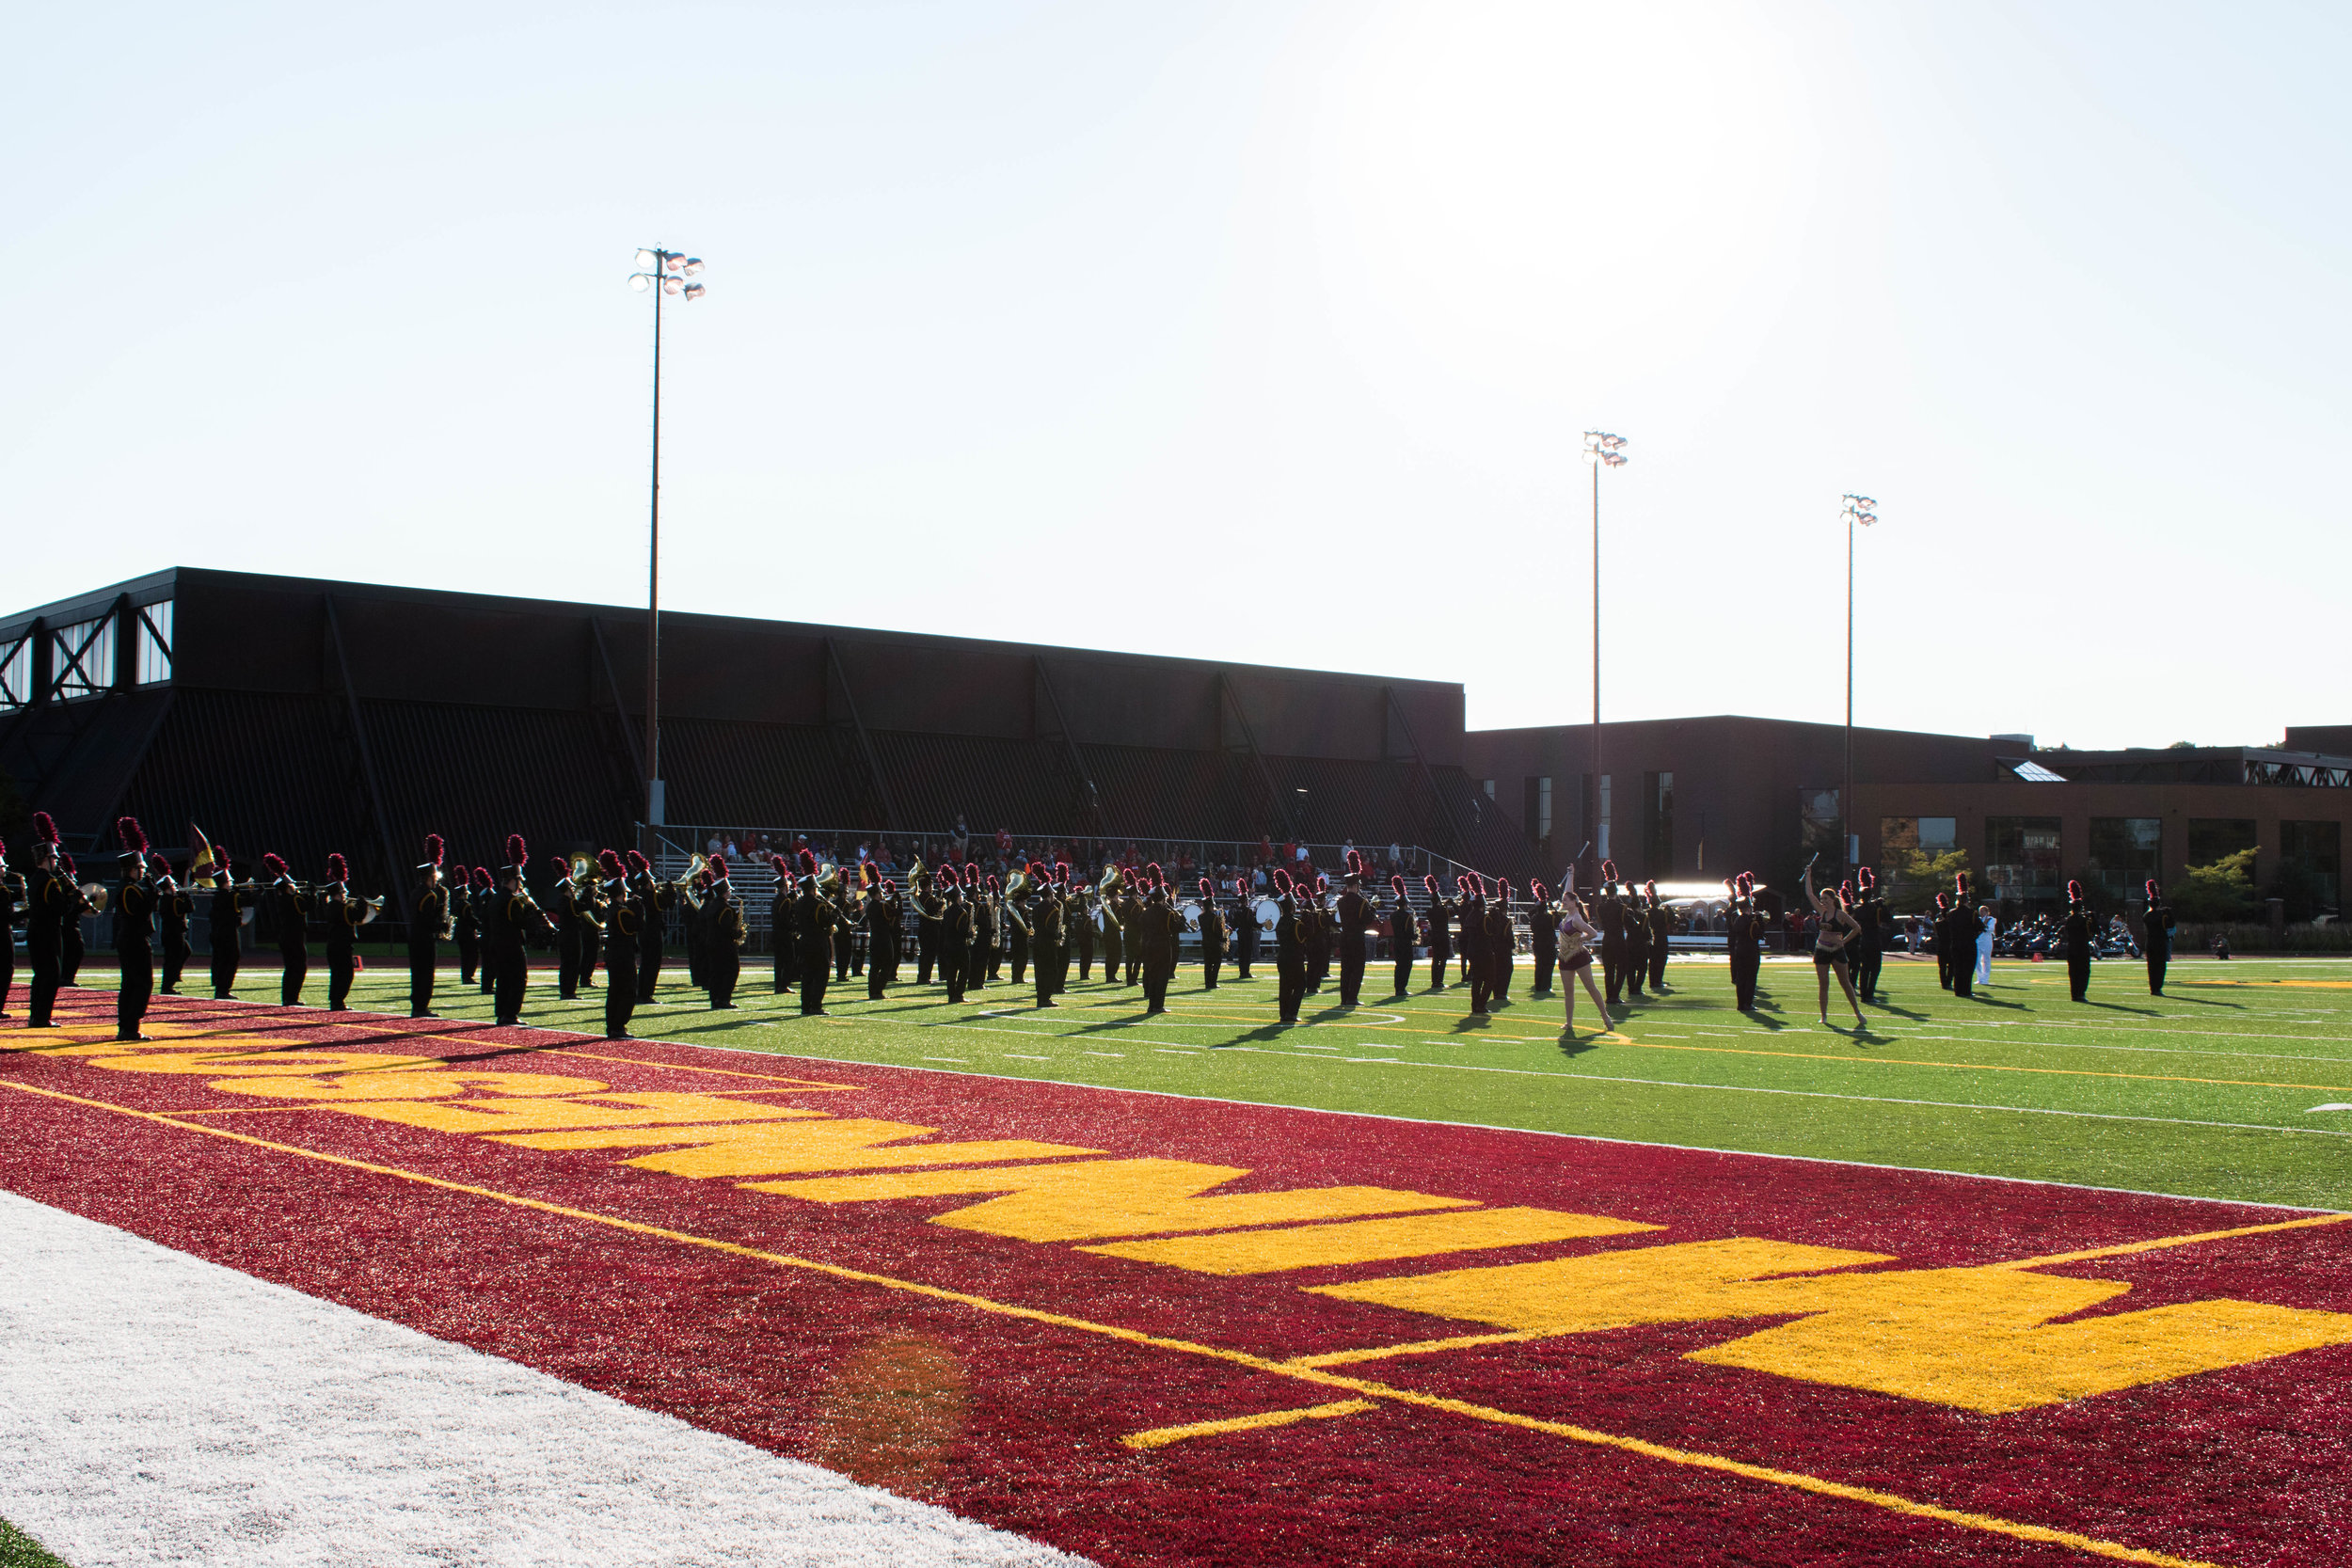 UMD Bulldog Marching Band taking the field at Malosky Stadium. Photo by Karli Kruse